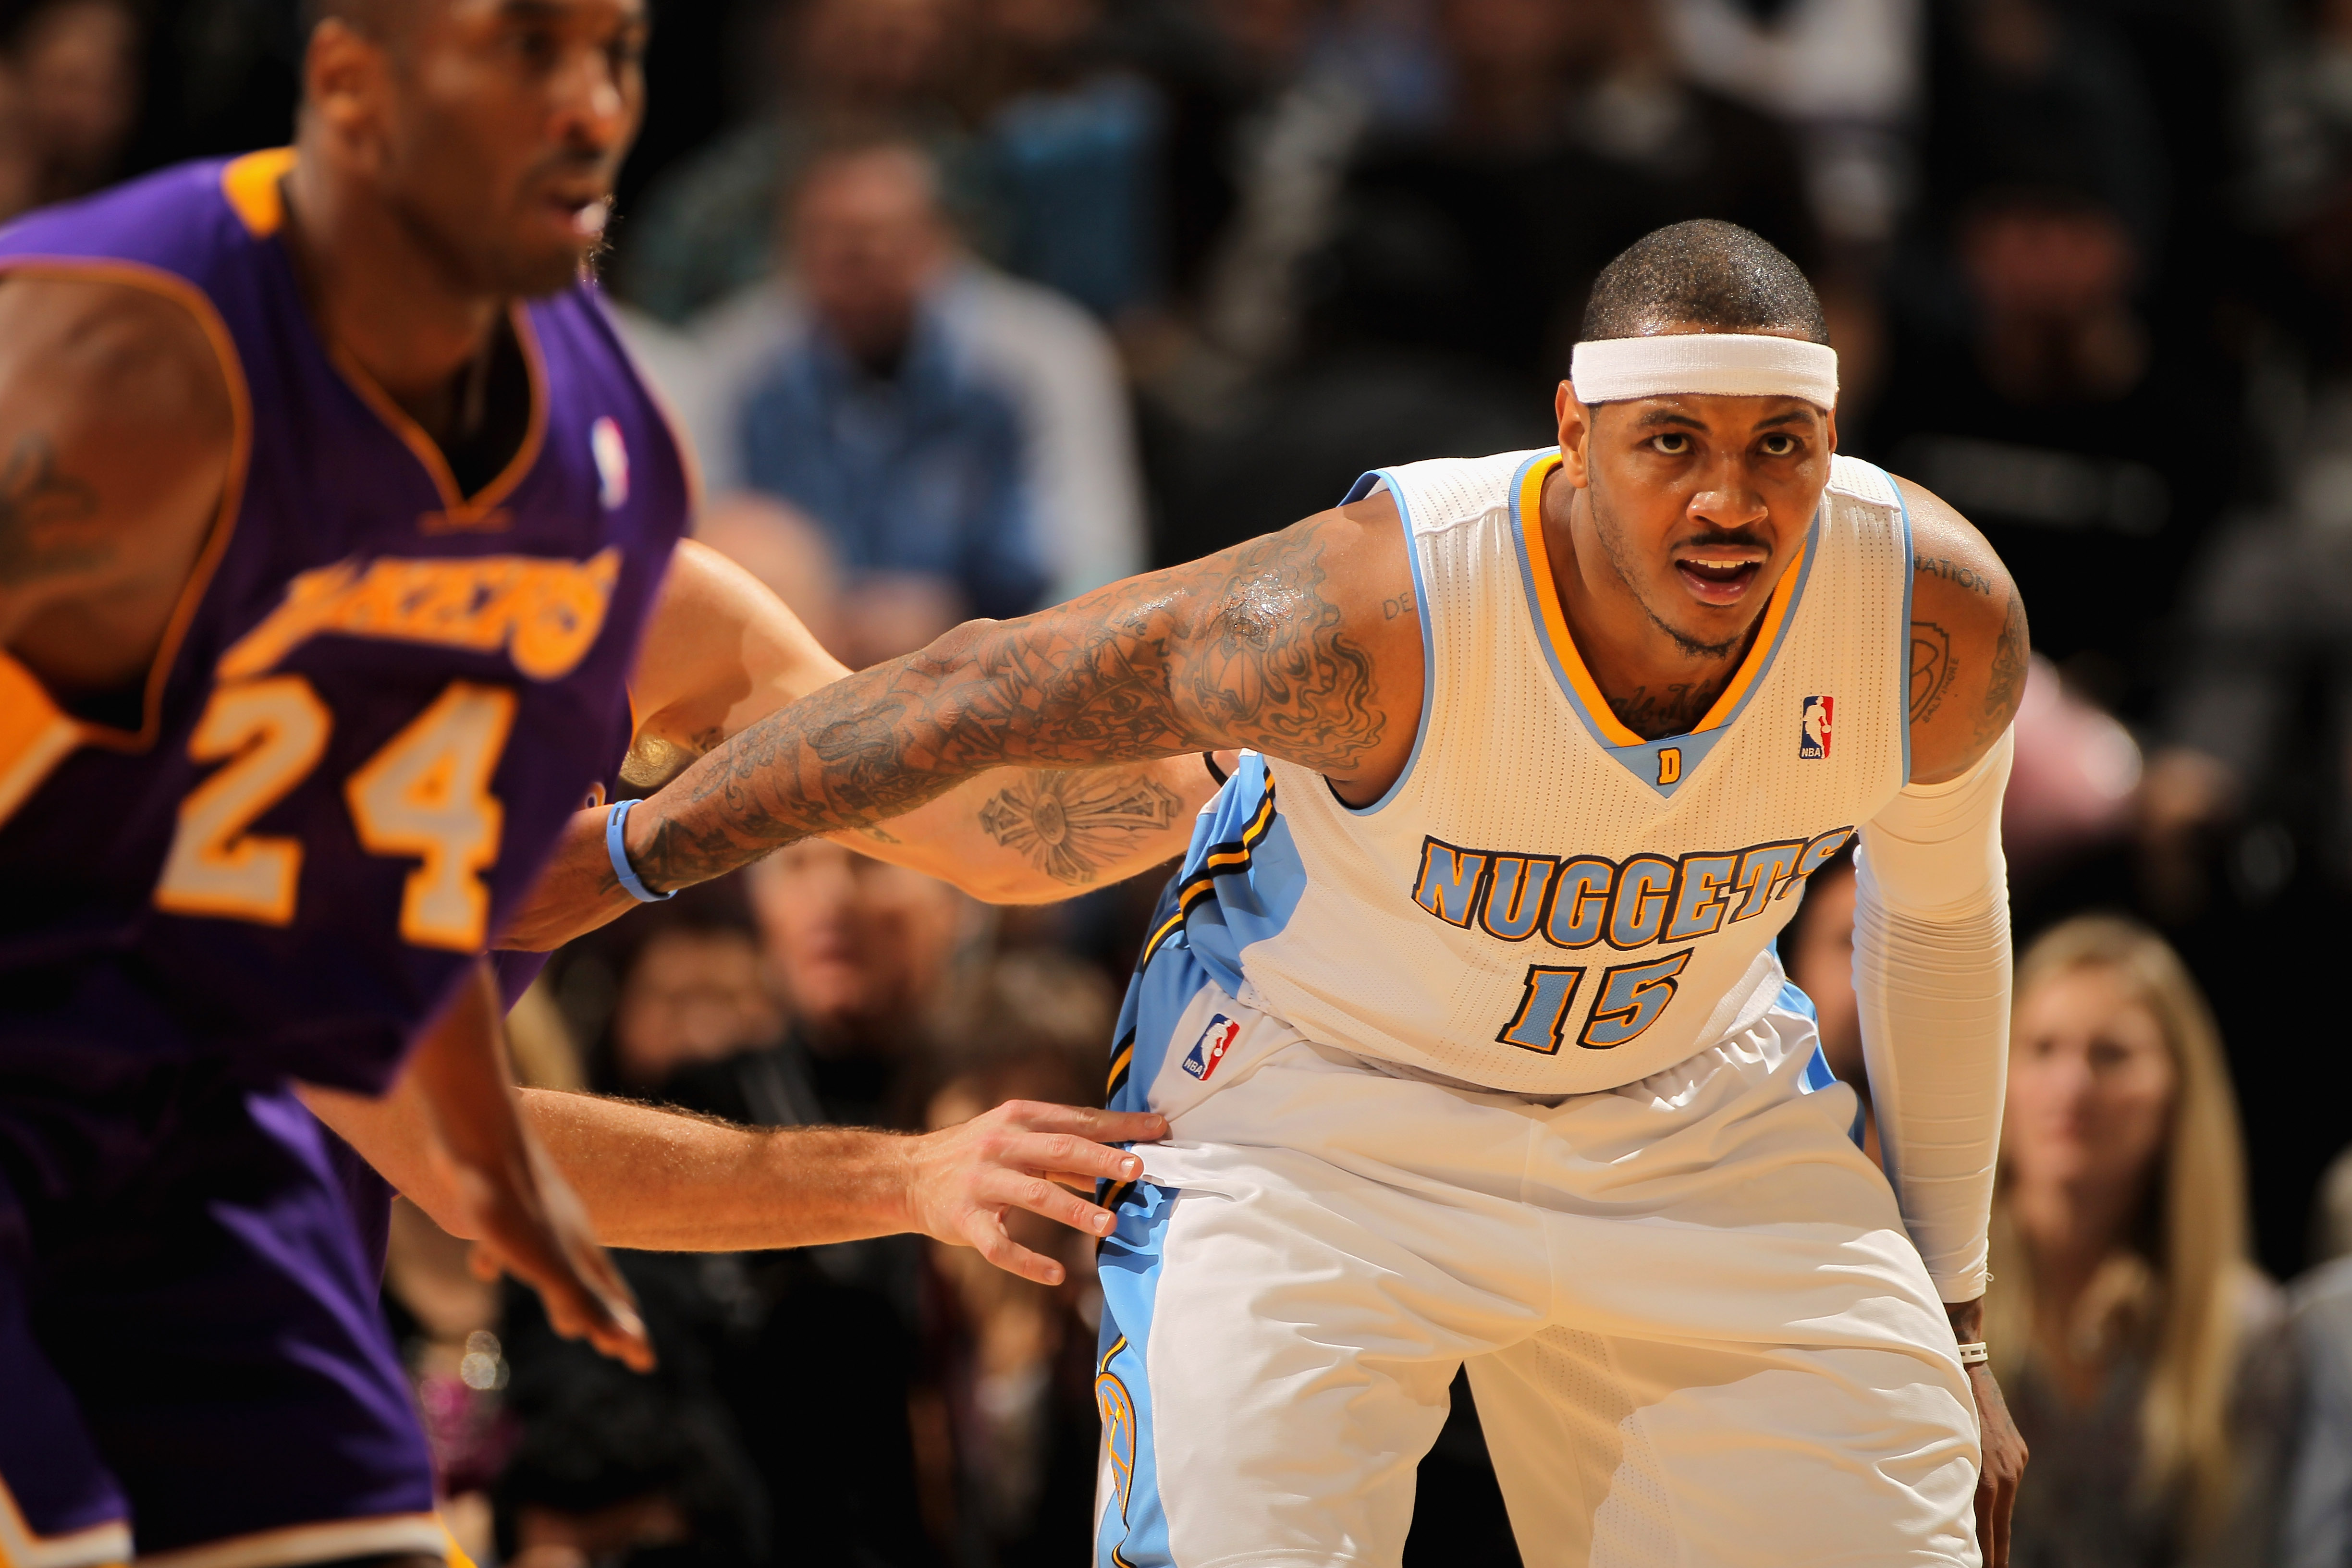 DENVER, CO - JANUARY 21:  Carmelo Anthony #15 of the Denver Nuggets gets open and lookls for the ball against the Los Angeles Lakers at the Pepsi Center on January 21, 2011 in Denver, Colorado. The Lakers defeated the Nuggets 107-97. NOTE TO USER: User ex